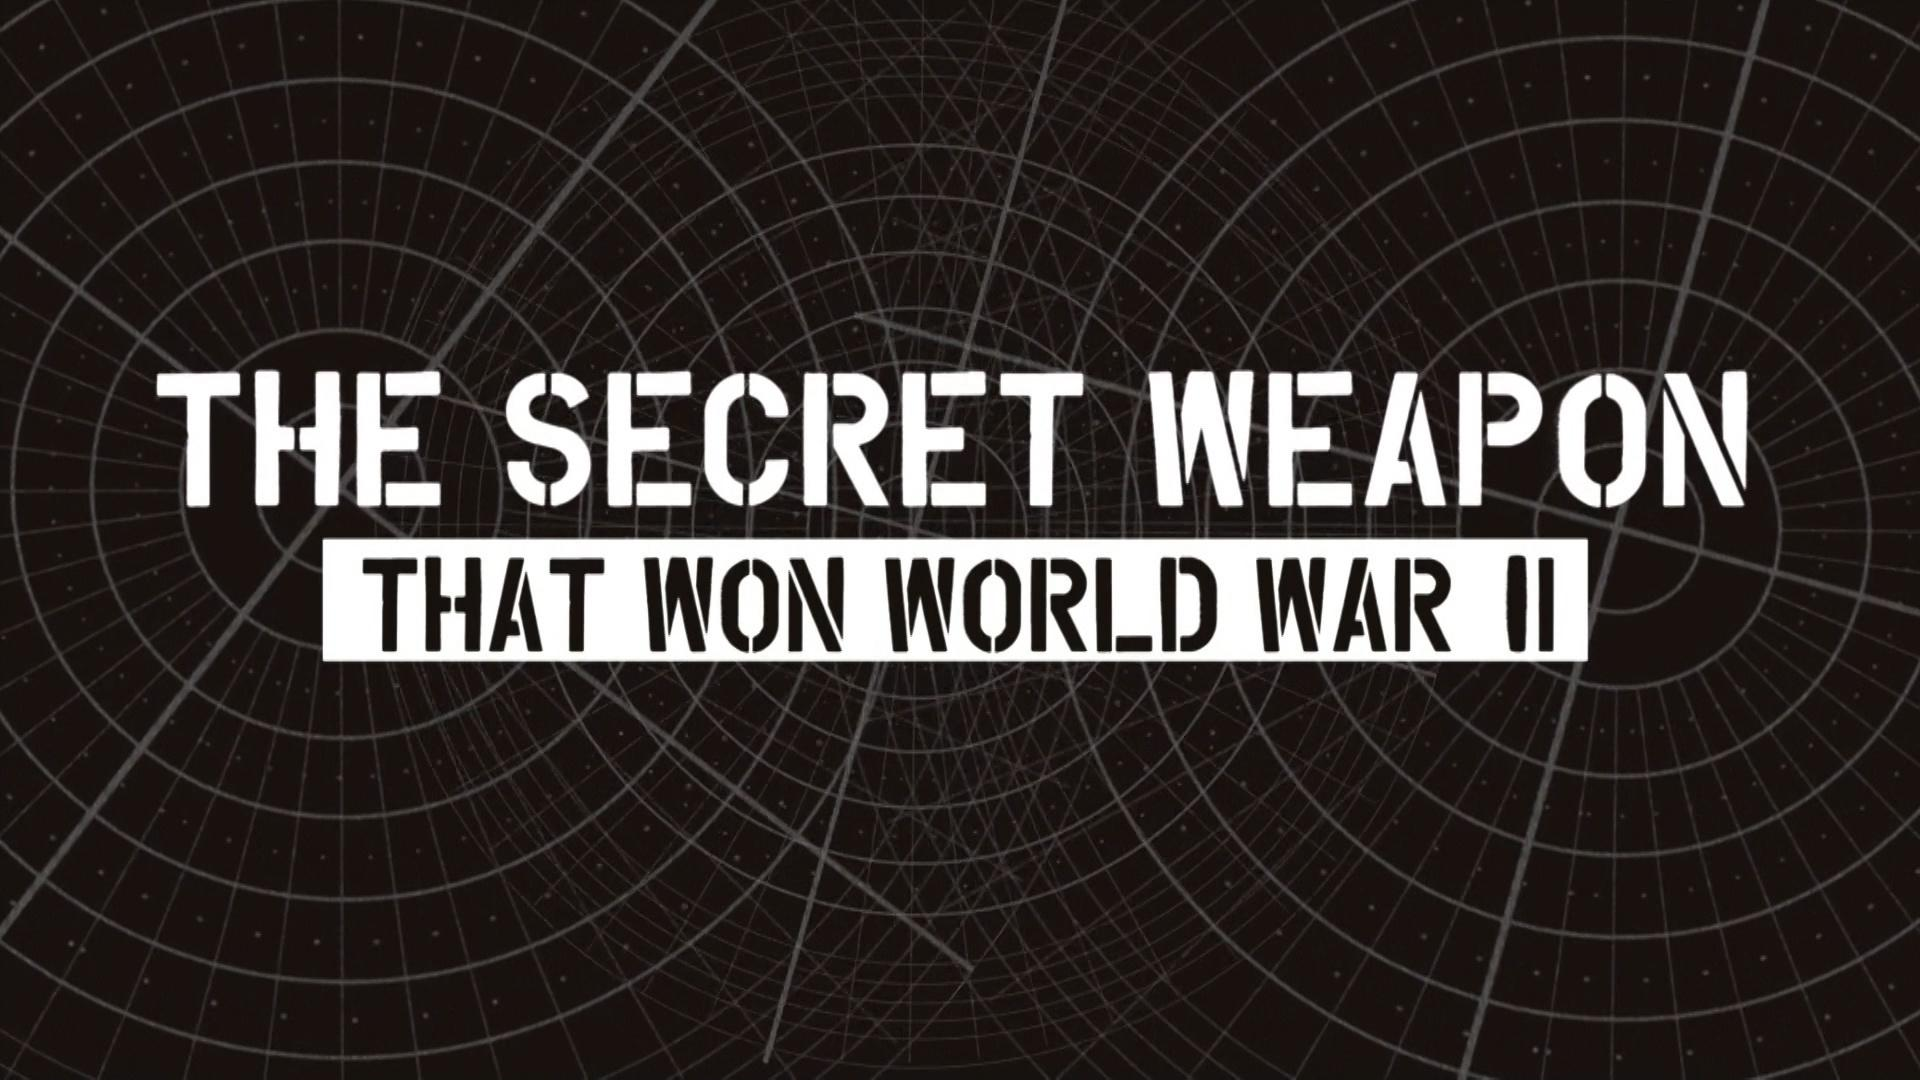 The Secret Weapon That Won WWII